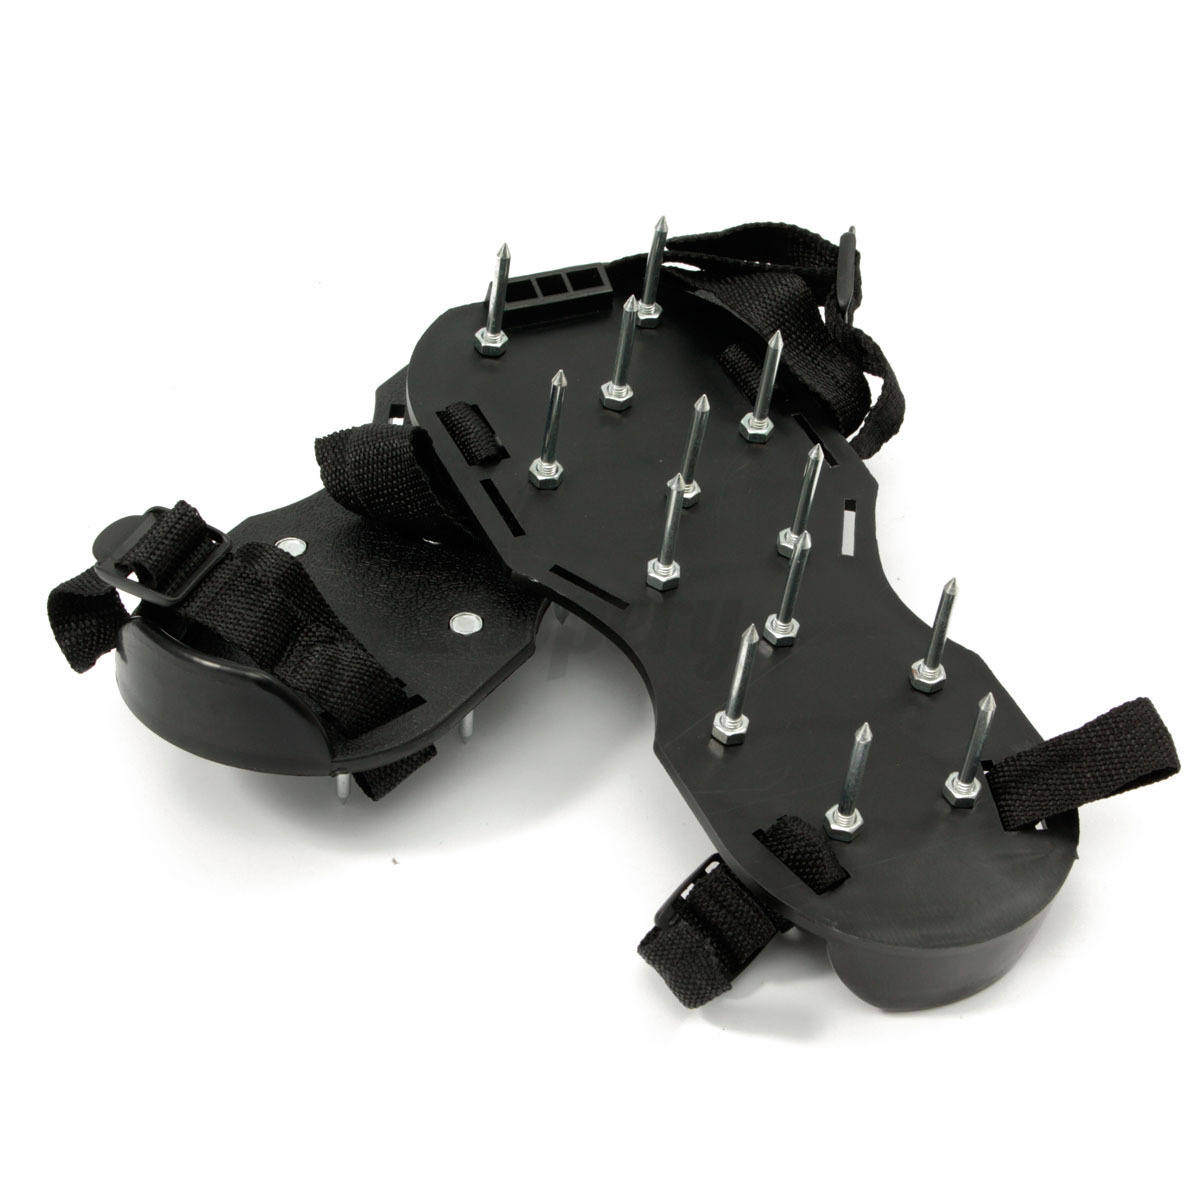 Lawn grass sod walking aerator spike strap shoes sandal for Garden tool with spikes